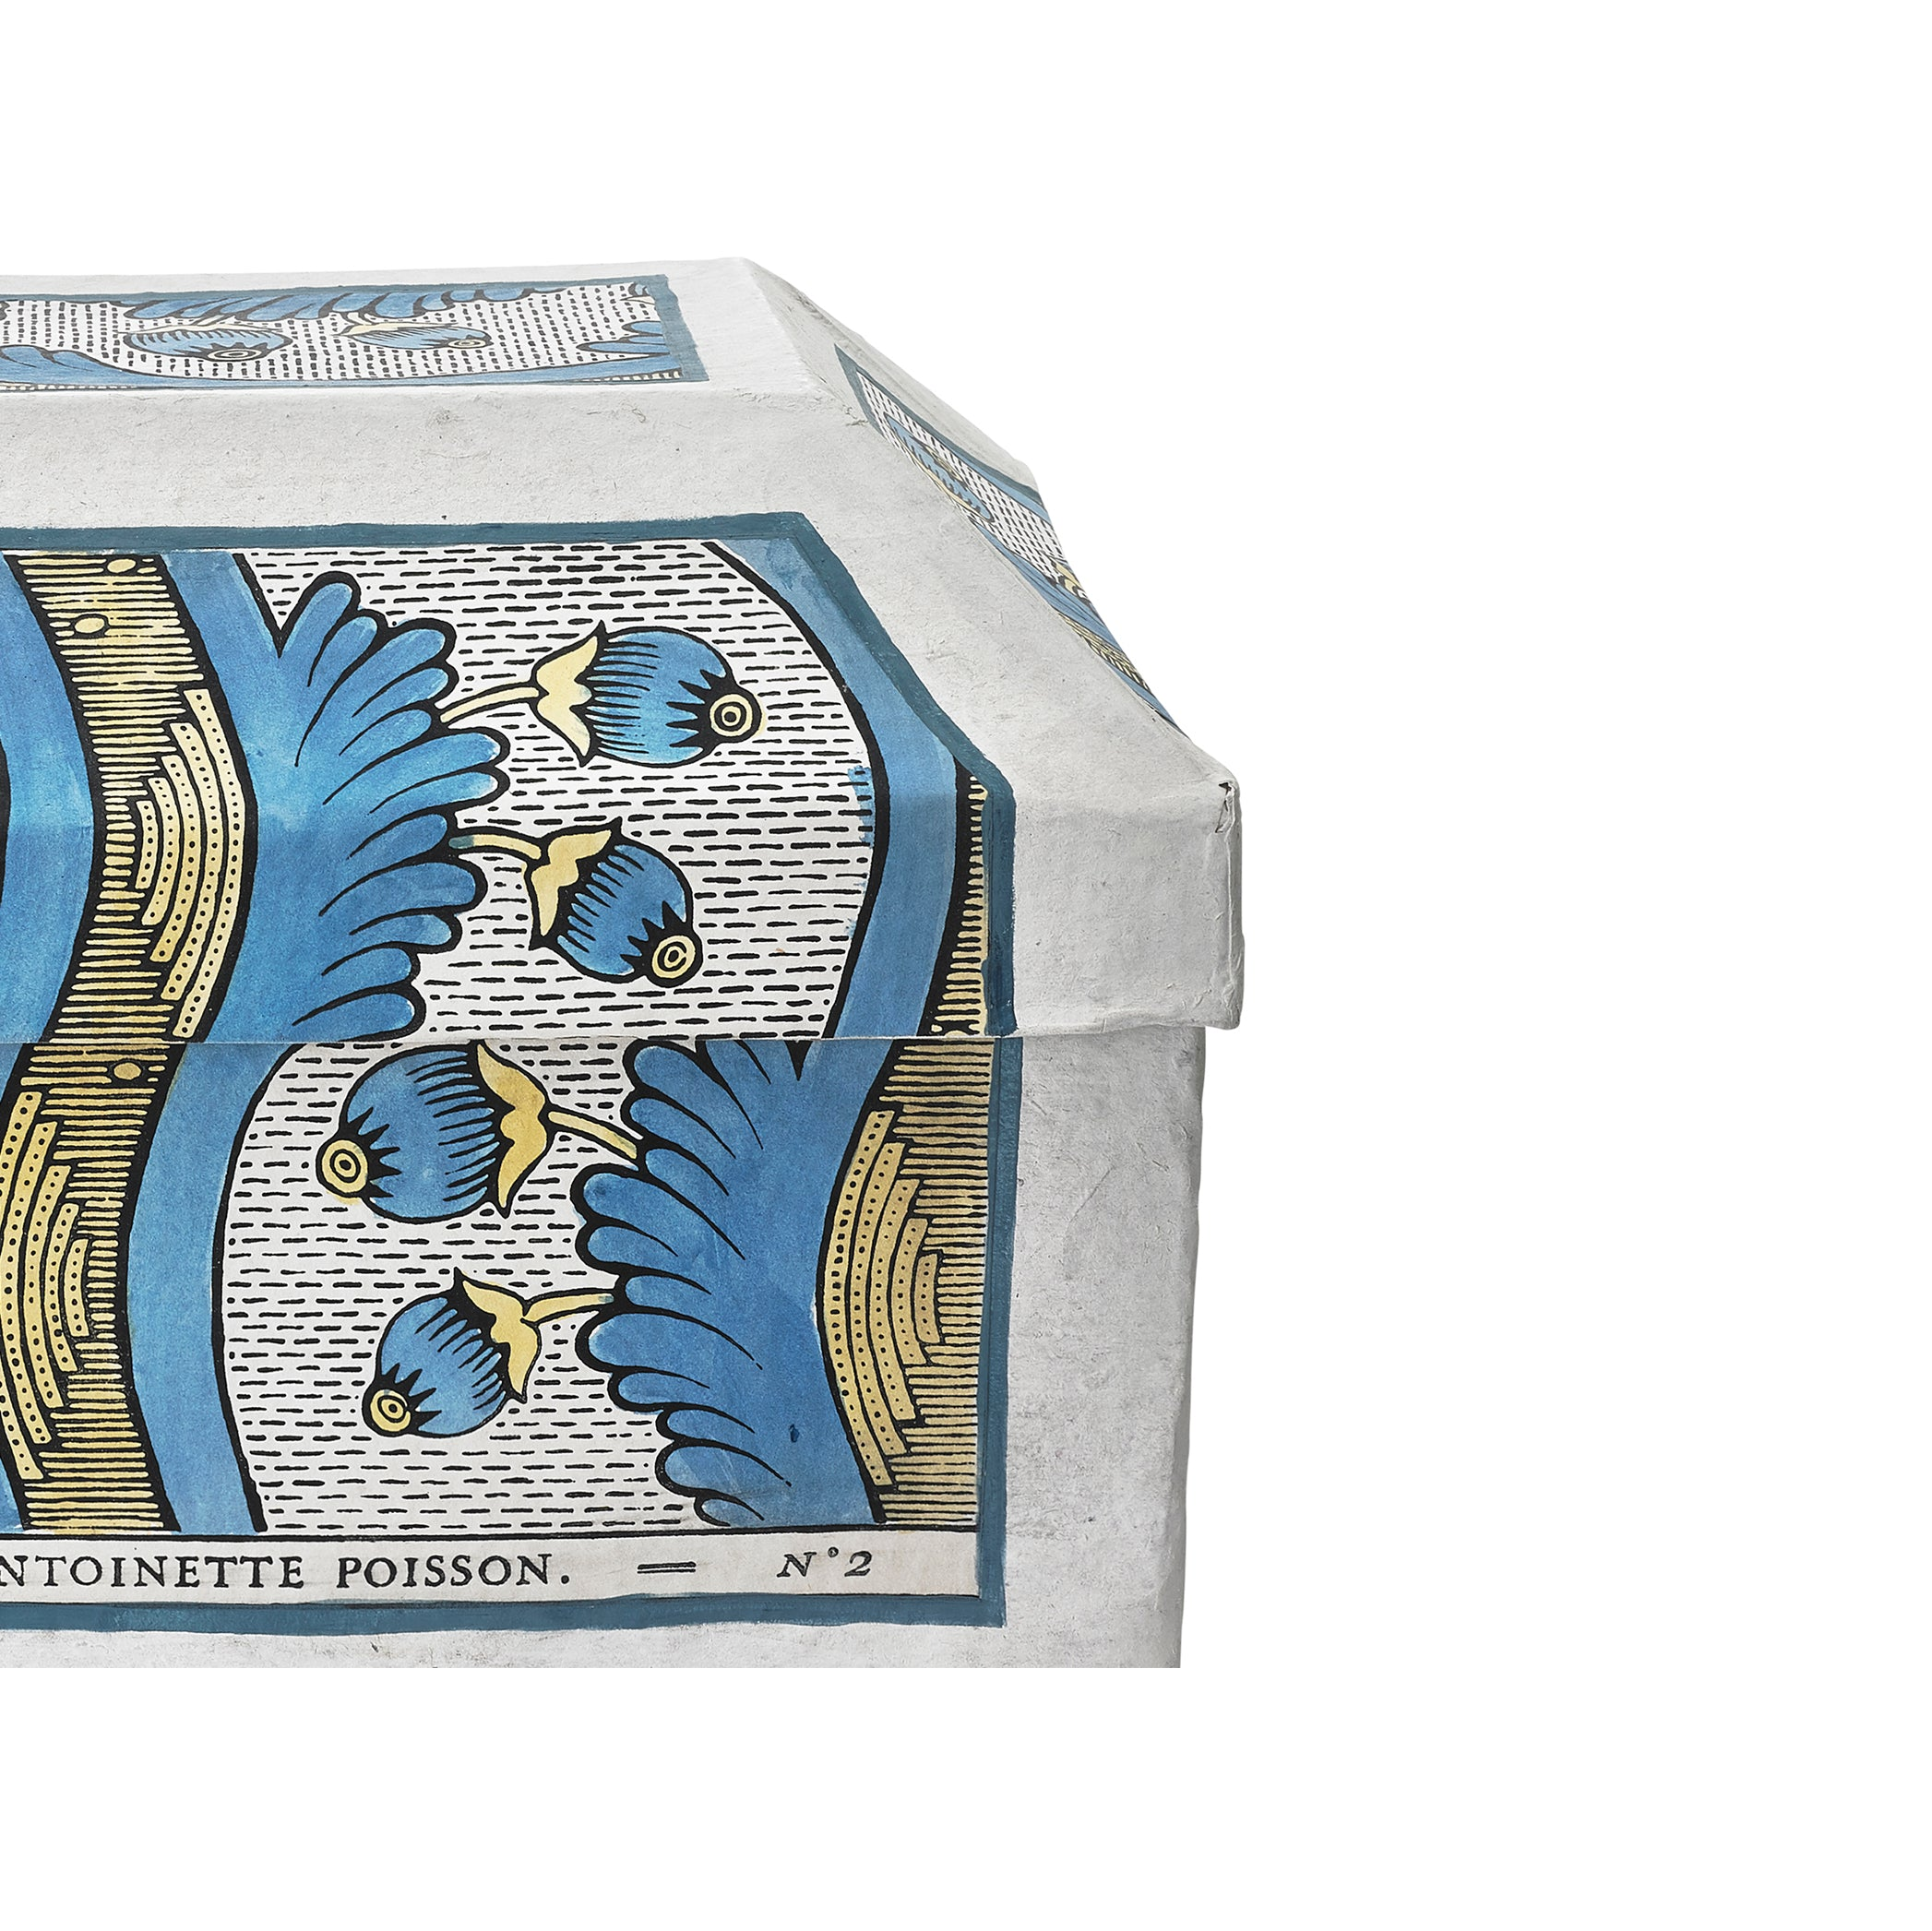 Antoinette Poisson Papier Maché Trésor Box in Blue and Yellow